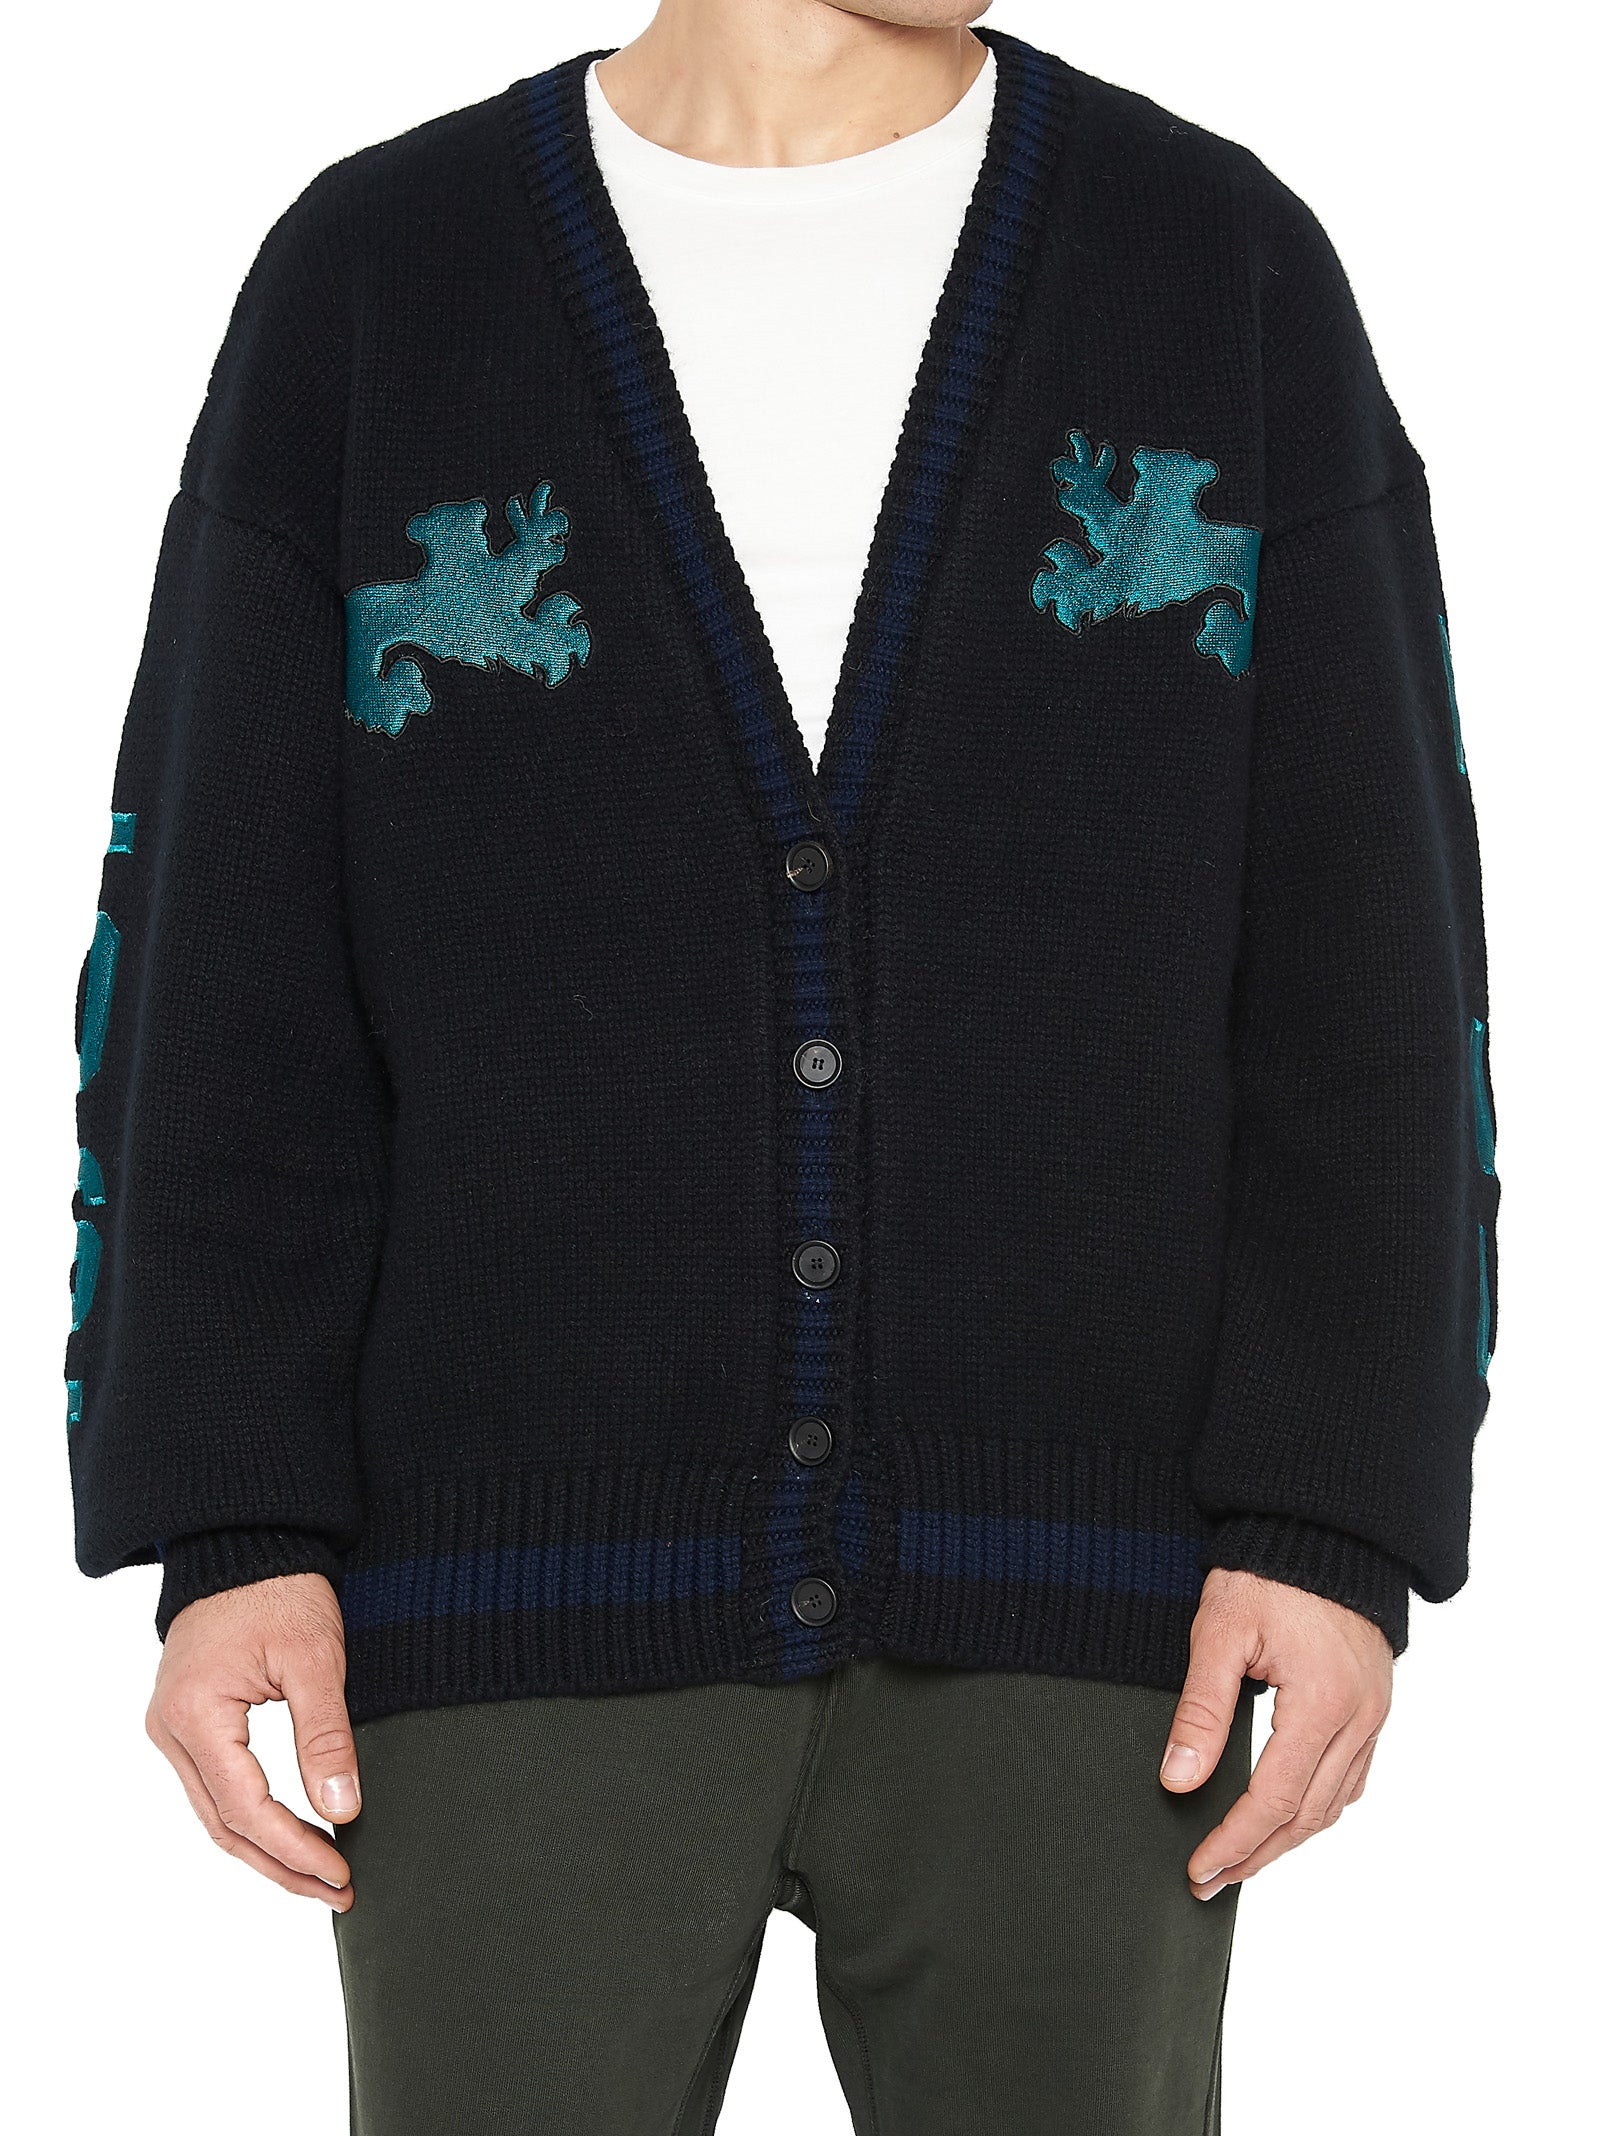 YEEZY EMBROIDERED KNITTED CARDIGAN